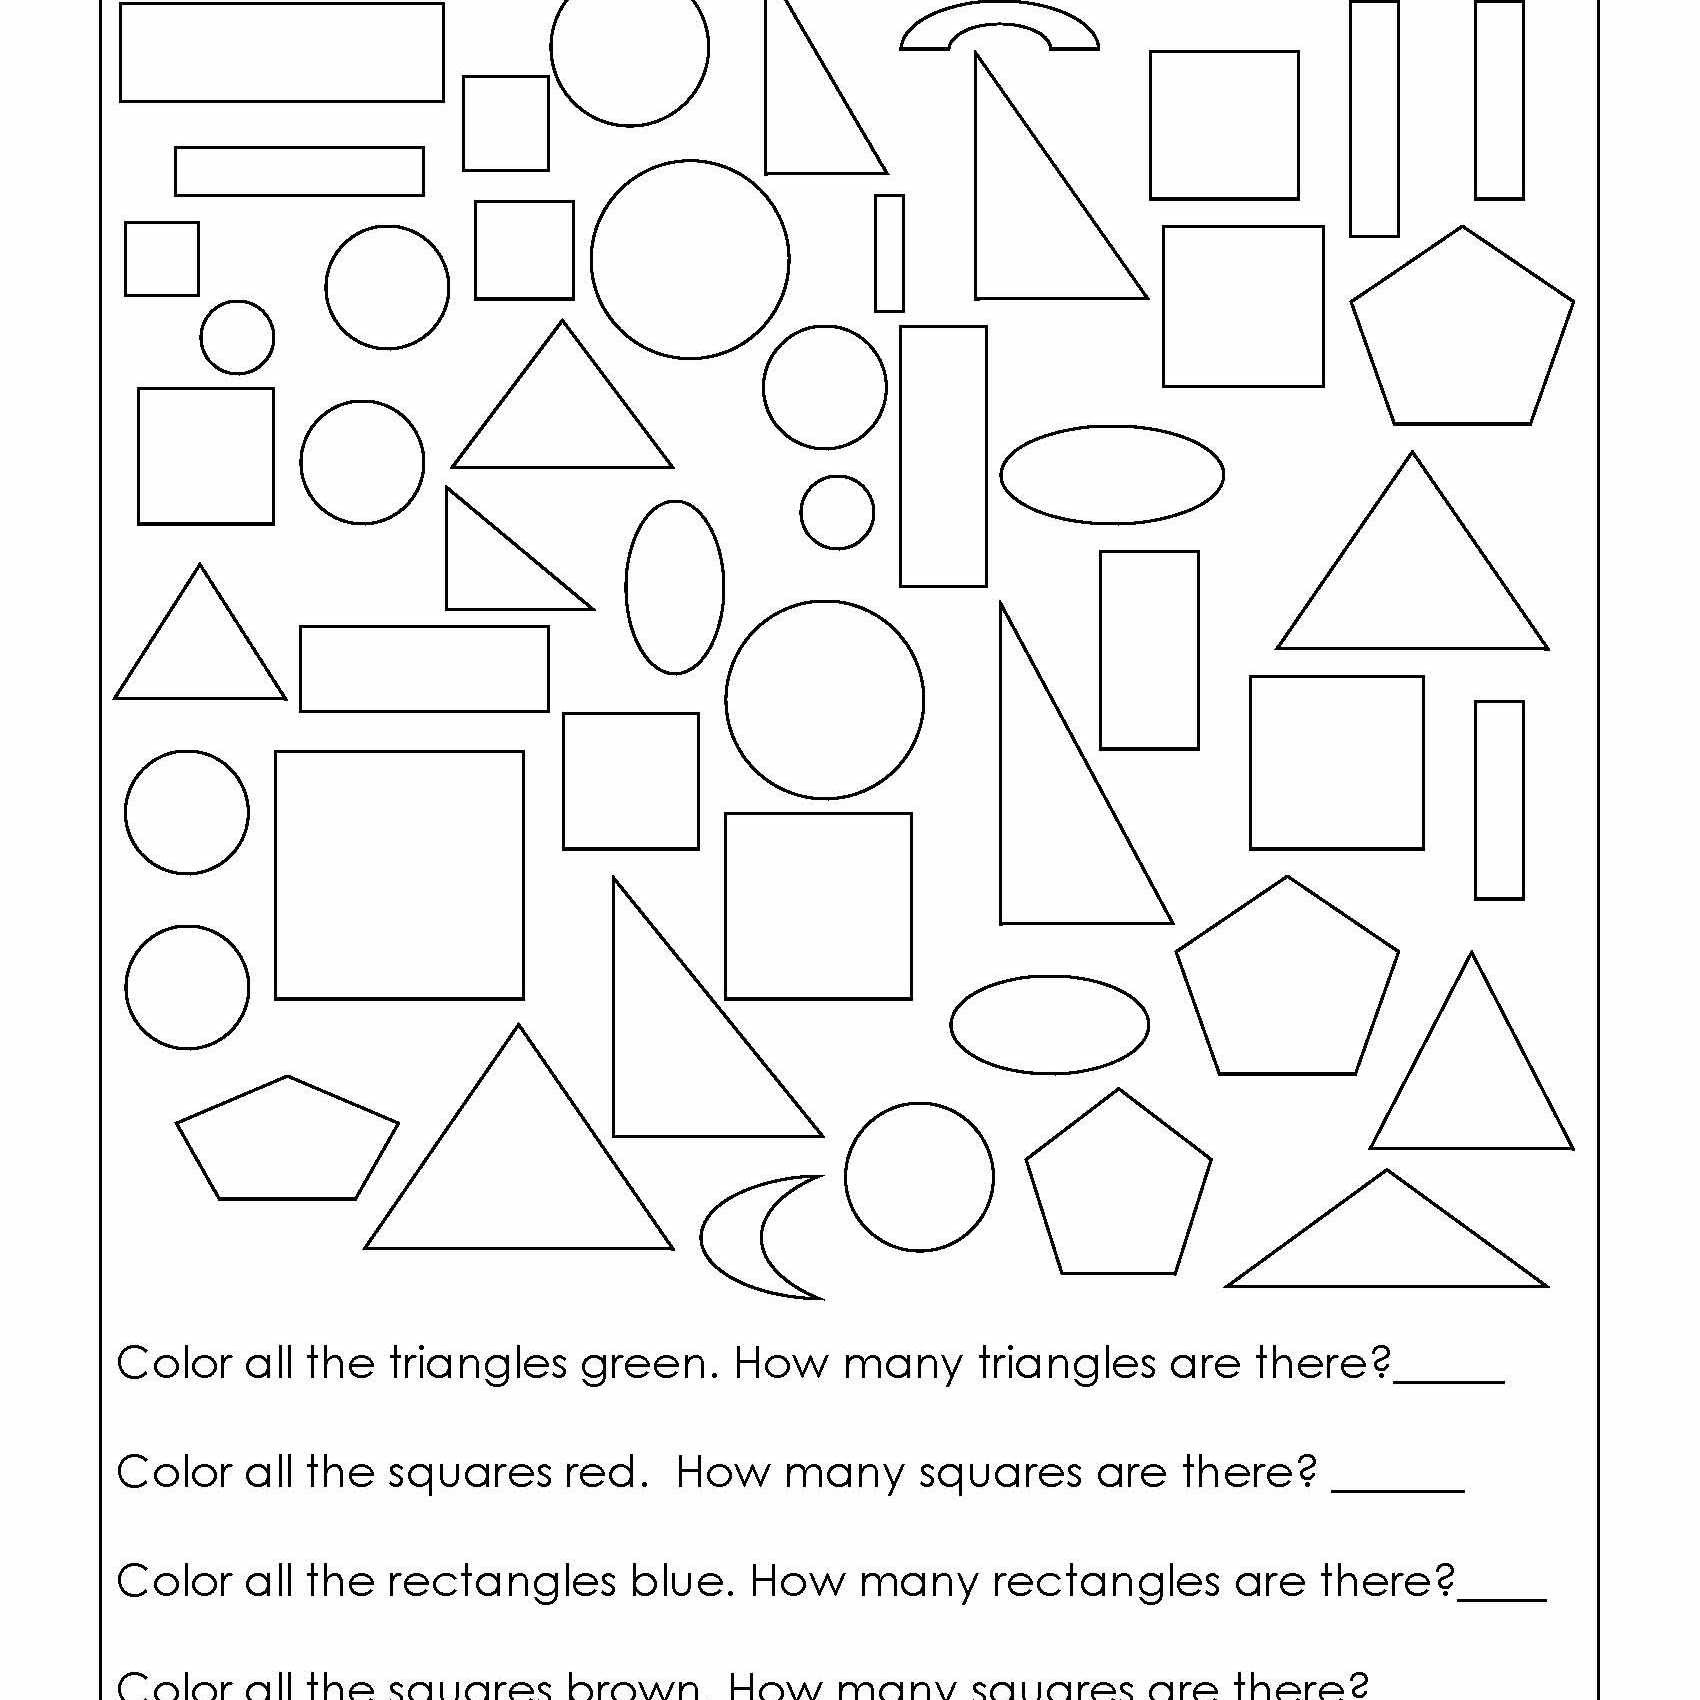 Identifying 2d Shapes Worksheets Geometry Worksheets for Students In 1st Grade